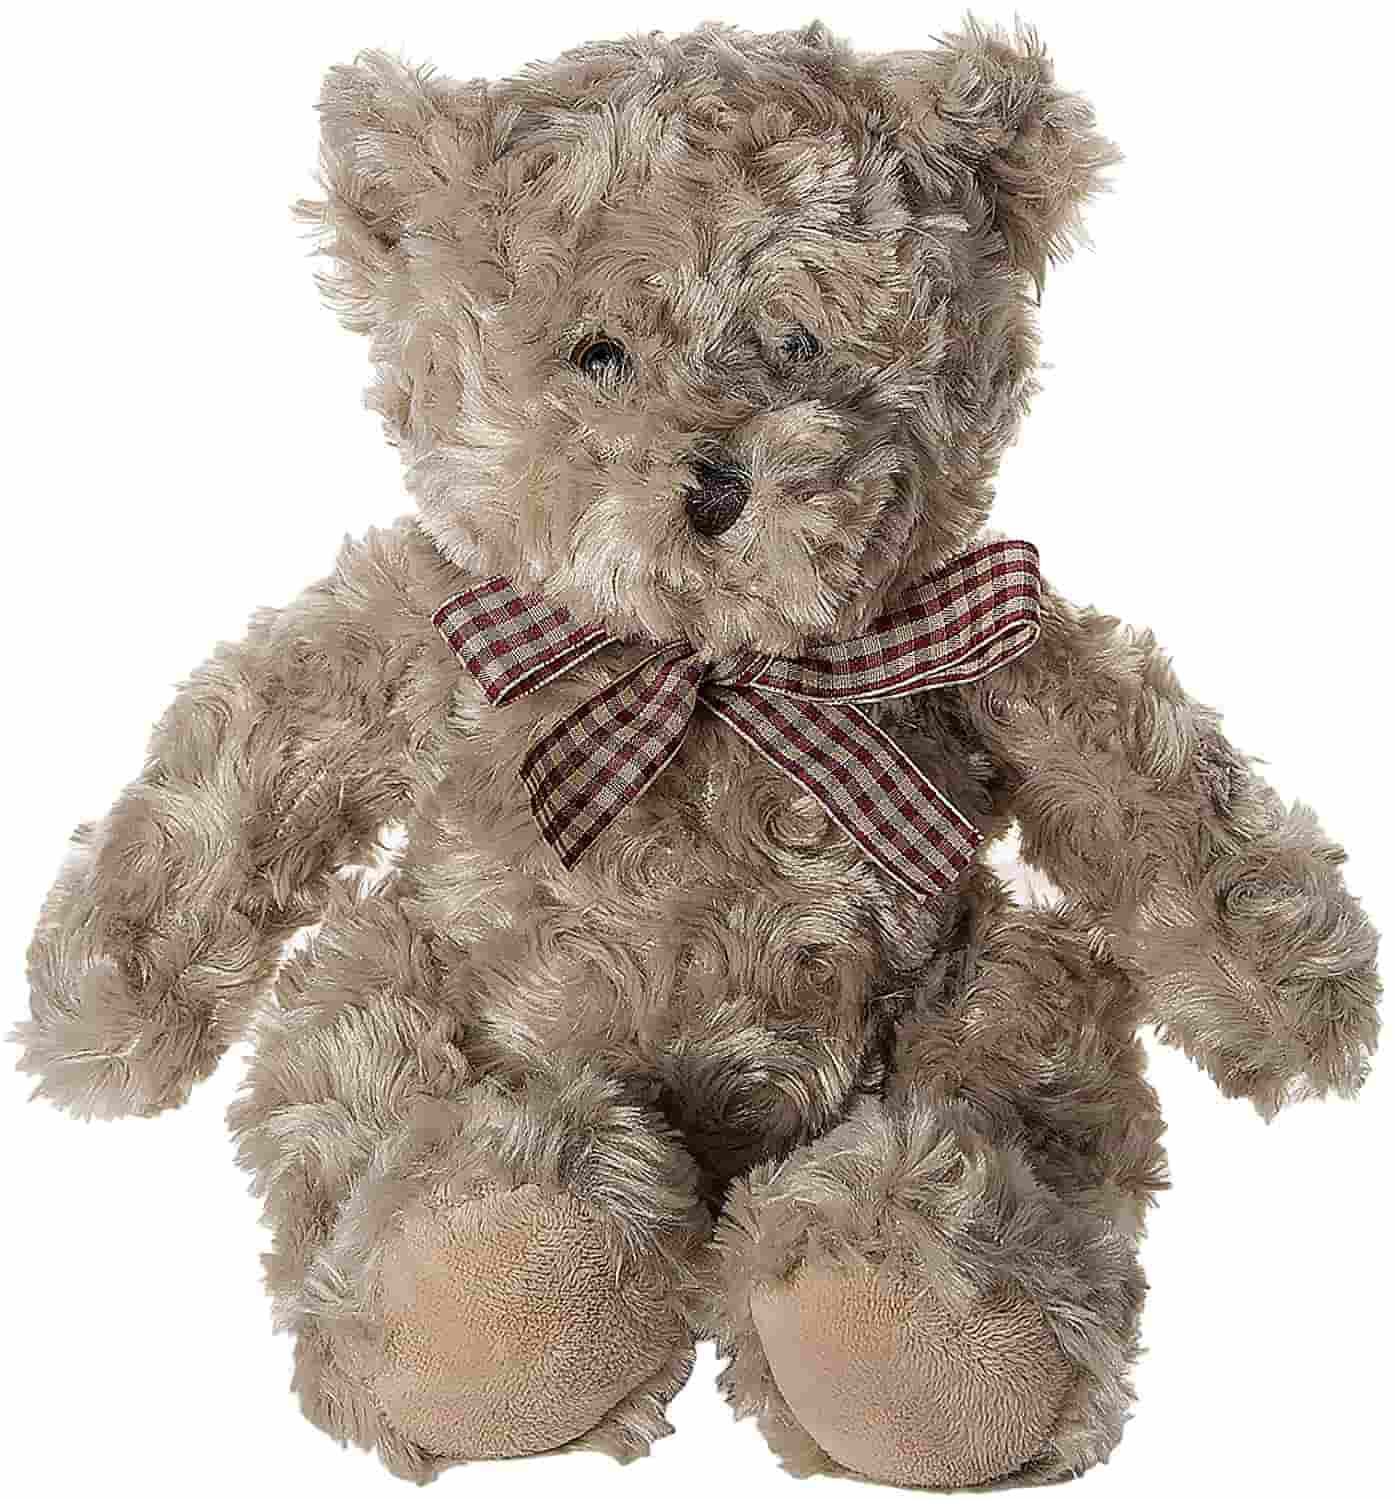 Very cute and affordable stuffed bear is washable and safe for babies.